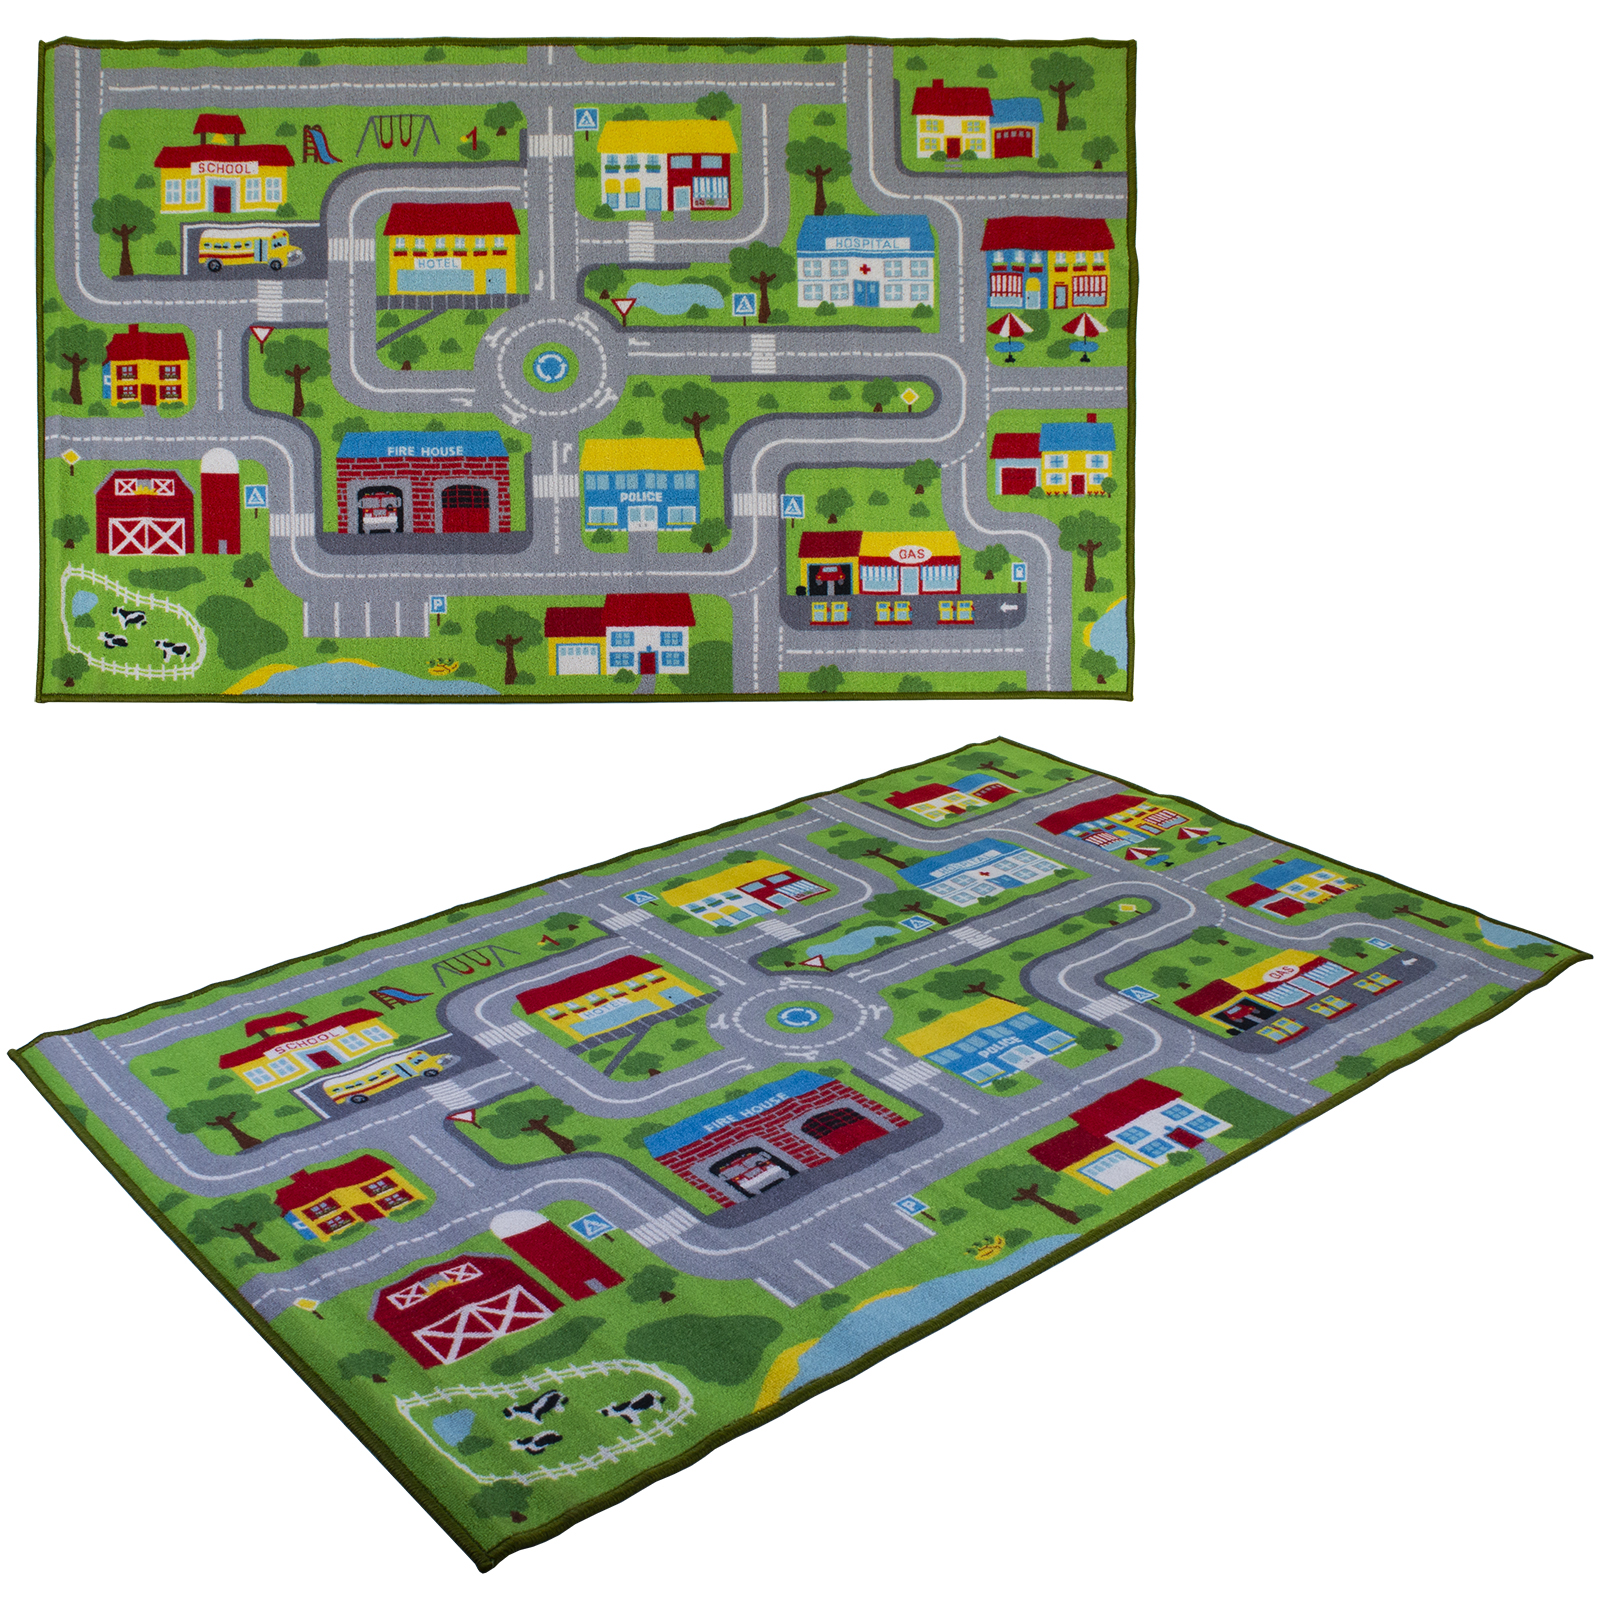 New Giant City Play Mat Wipe Clean With Damp Cloth Children Kids Game Playmat